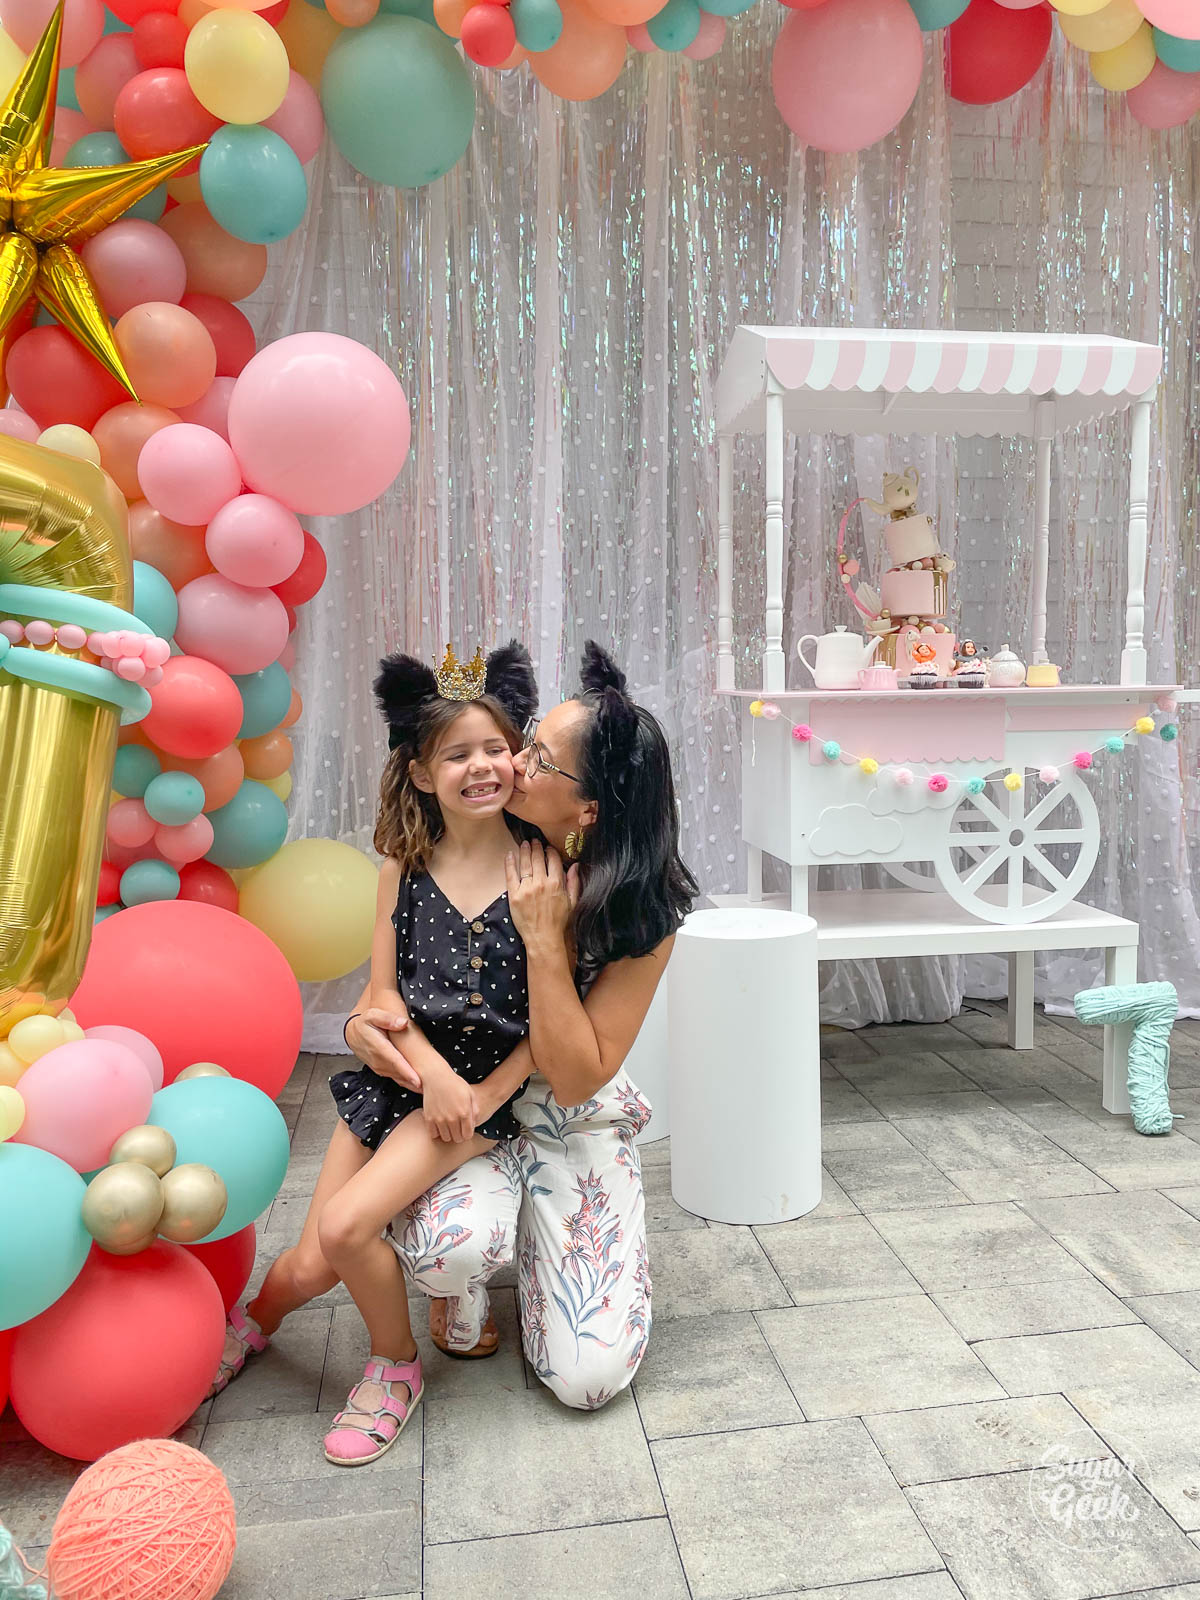 mom kissing daughter next to balloons